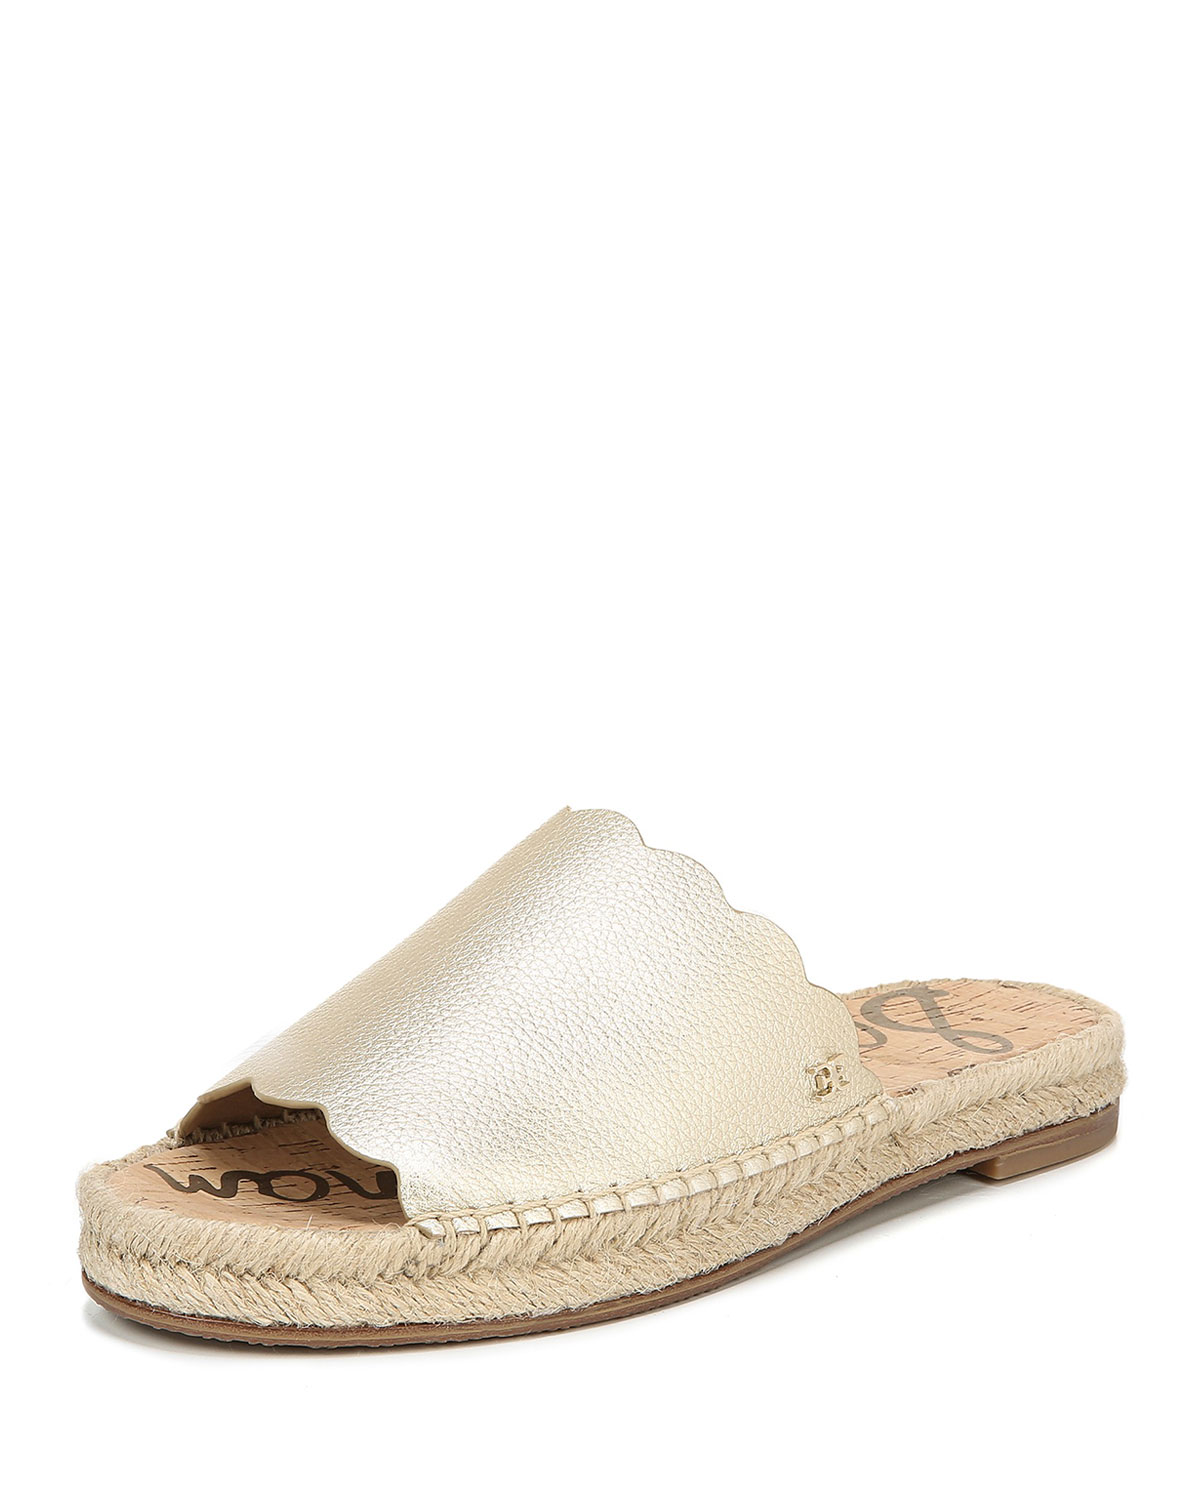 Andy Metallic Leather Espadrille Slides